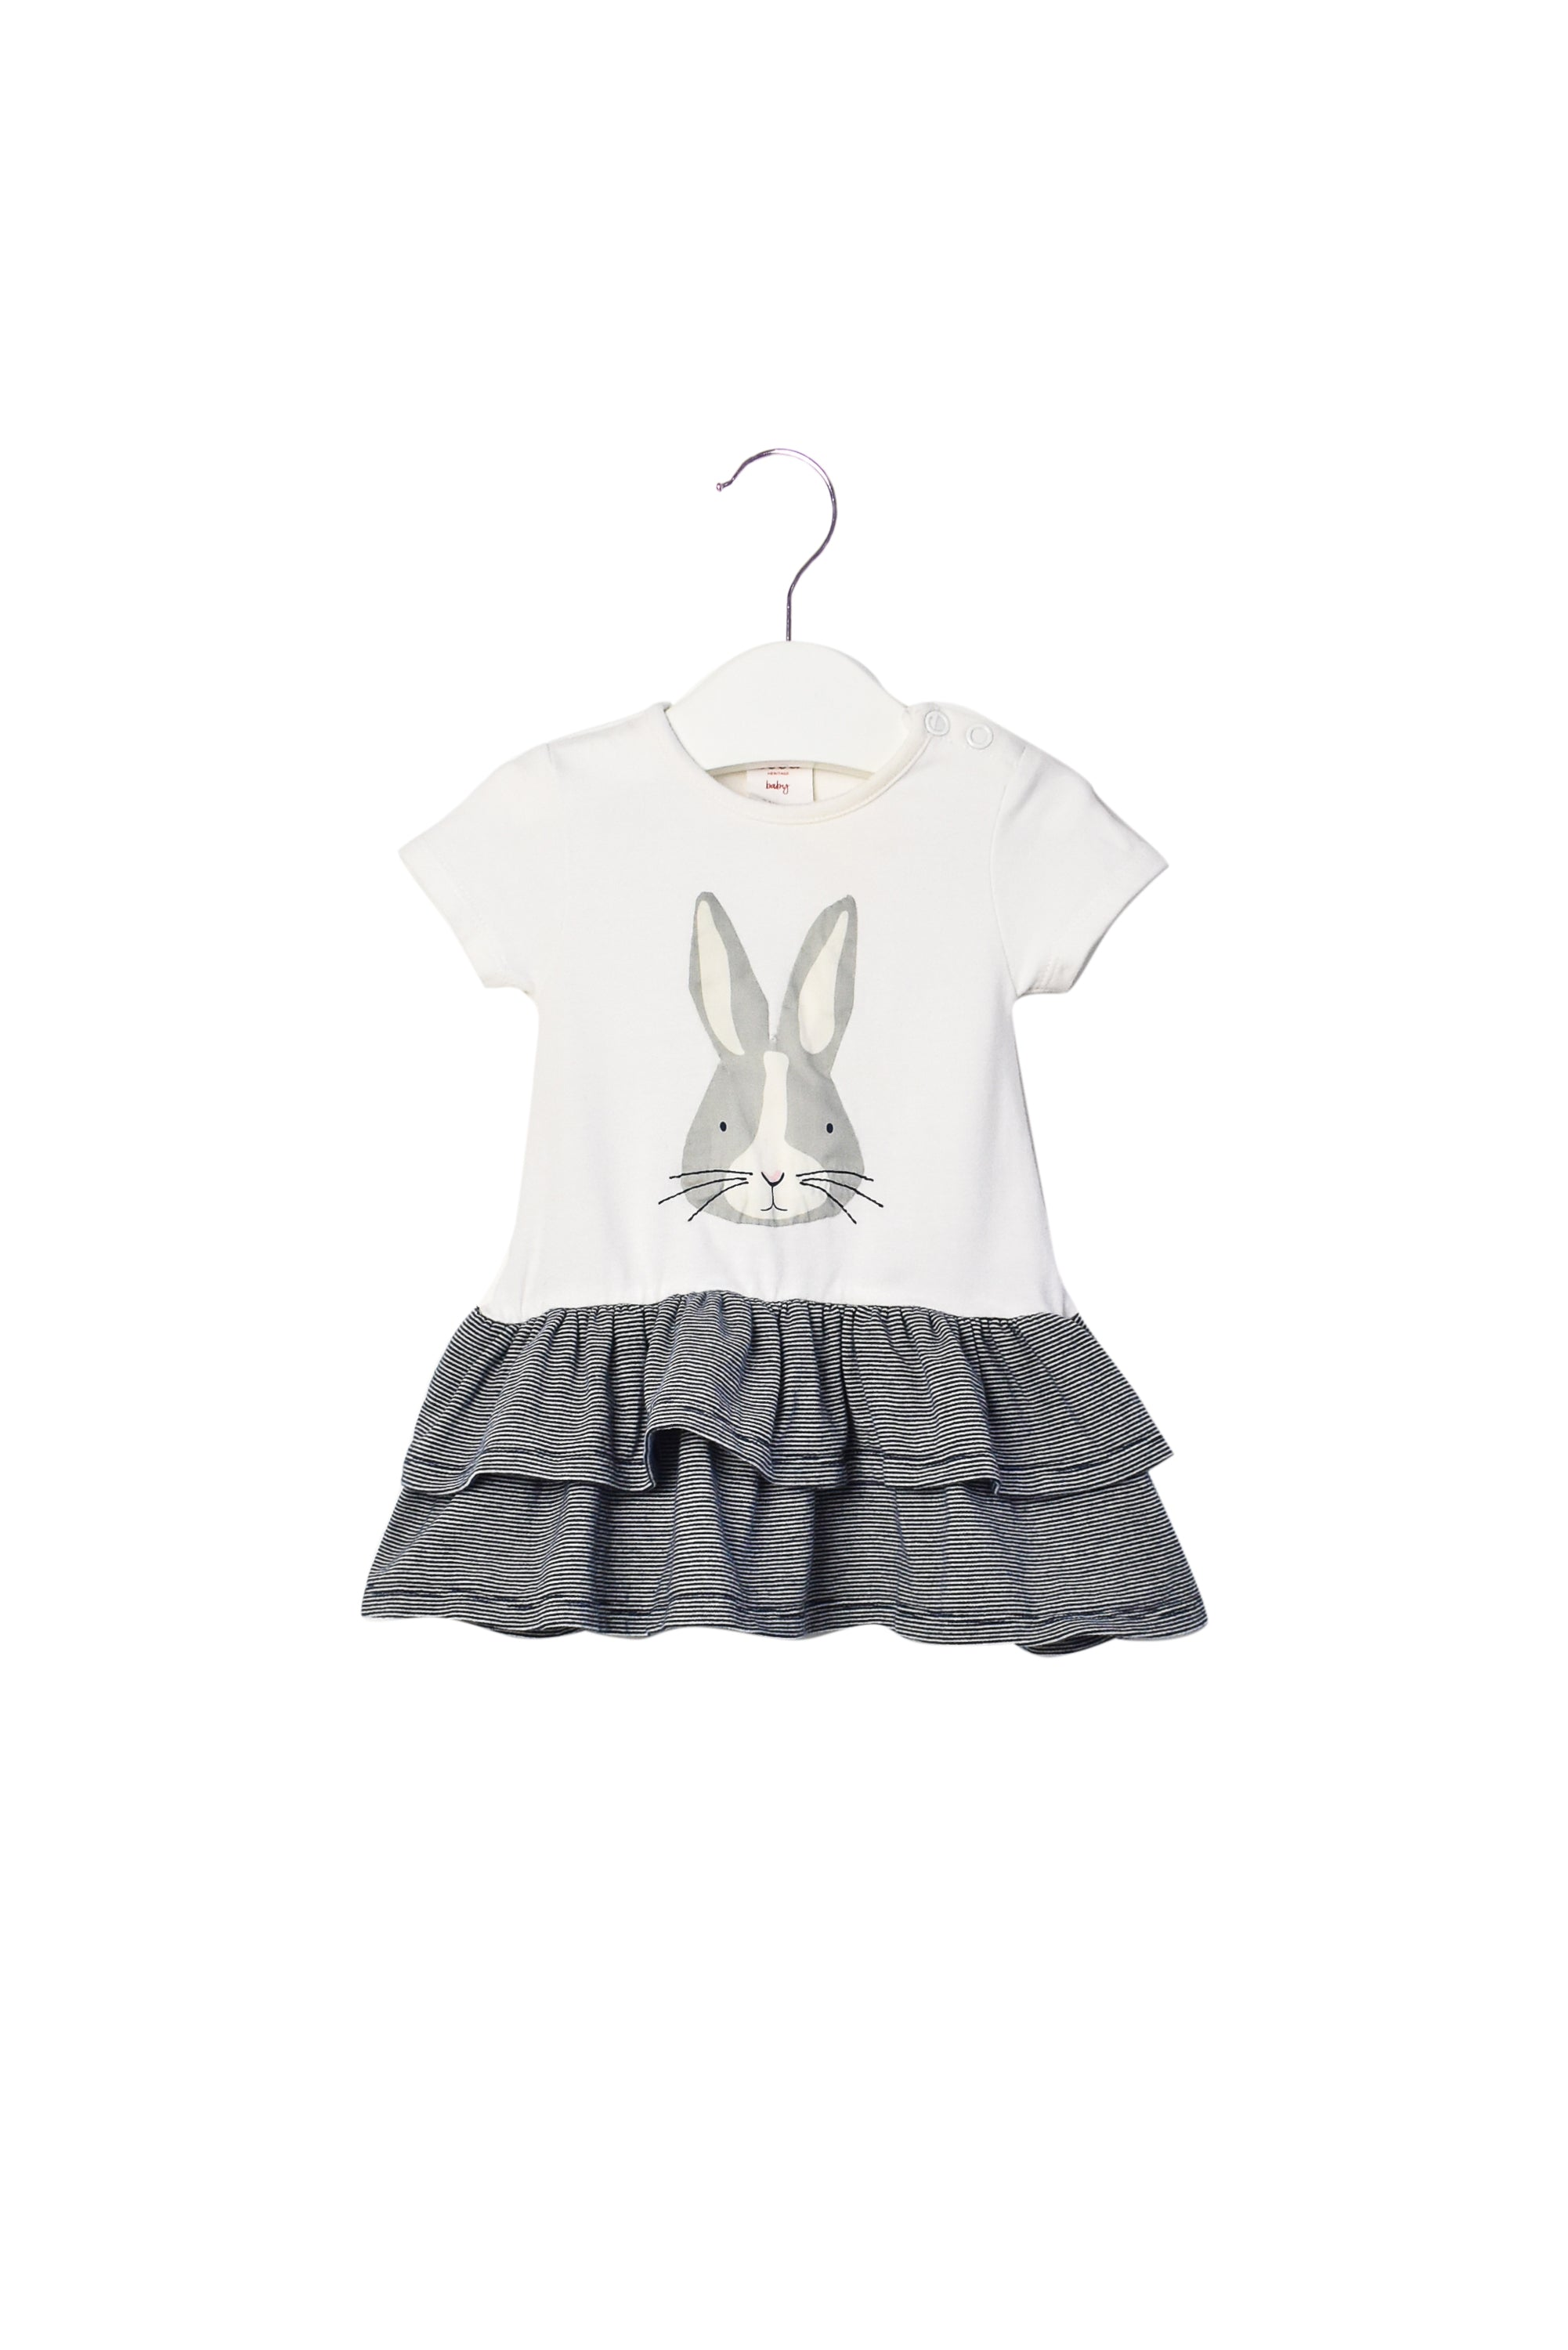 10006577 Seed Baby~Dress 0-3M at Retykle